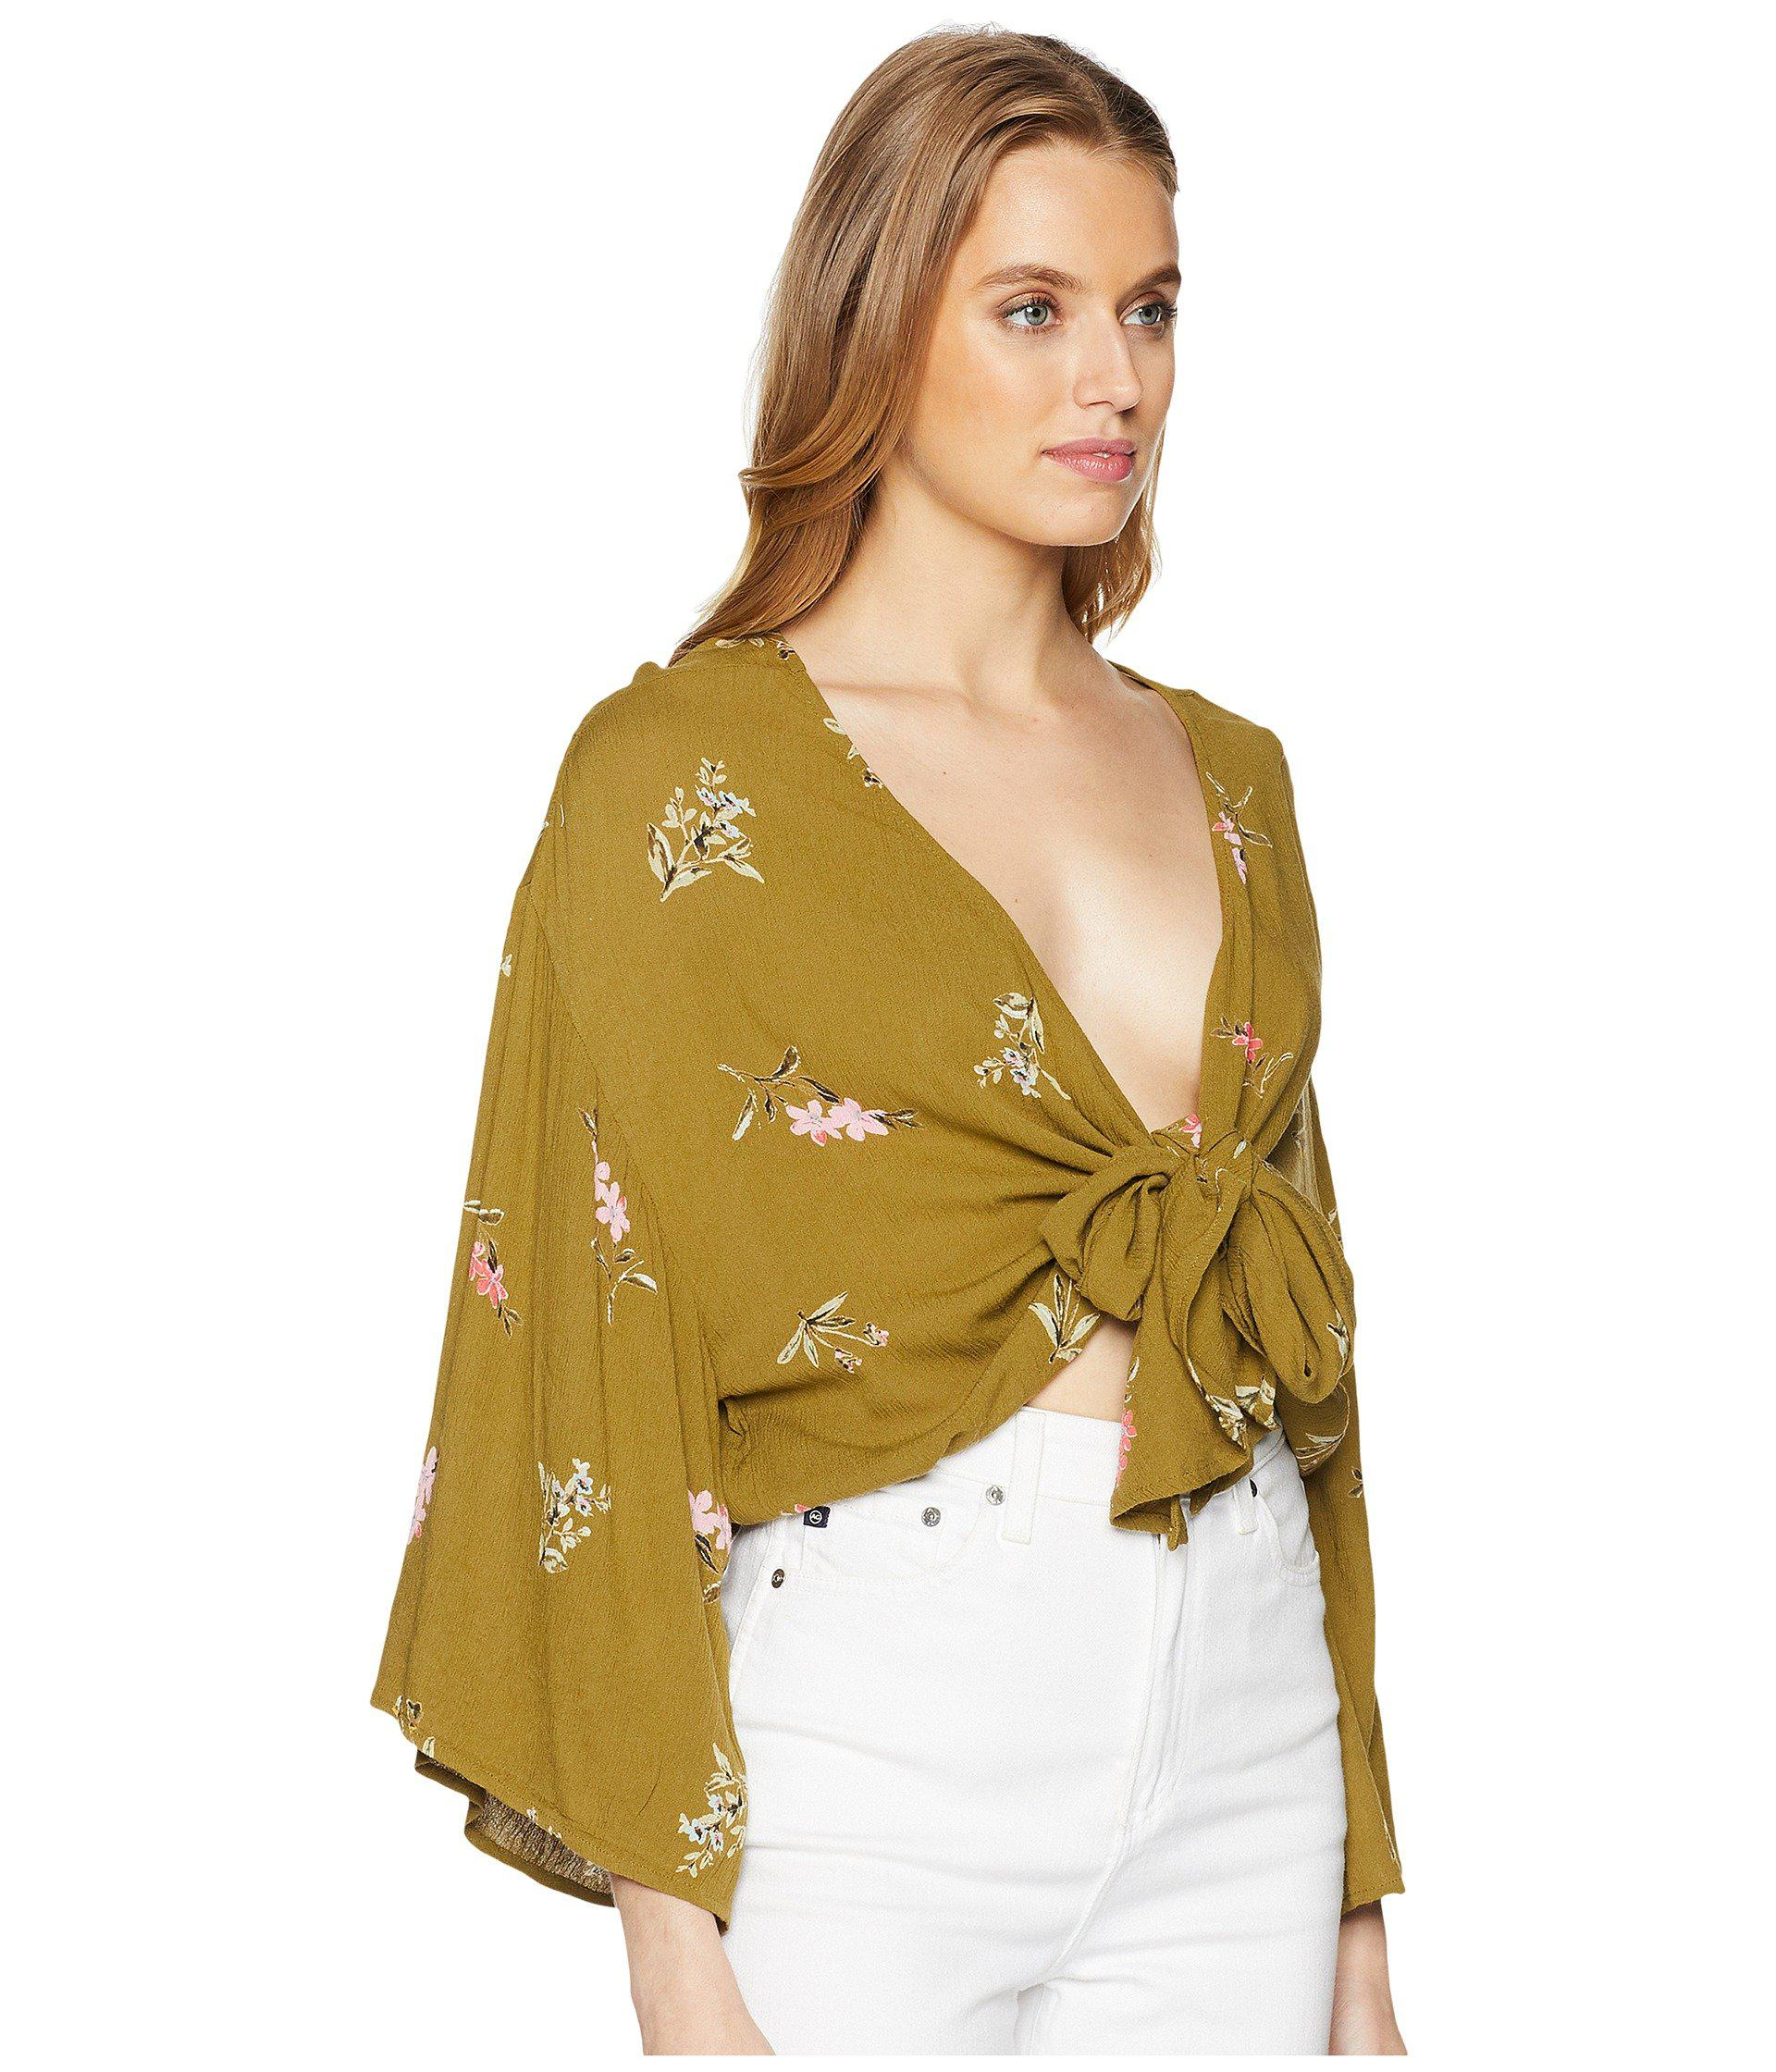 Knot Woven Multicolor Top Billabong Yours xoQdCBerW